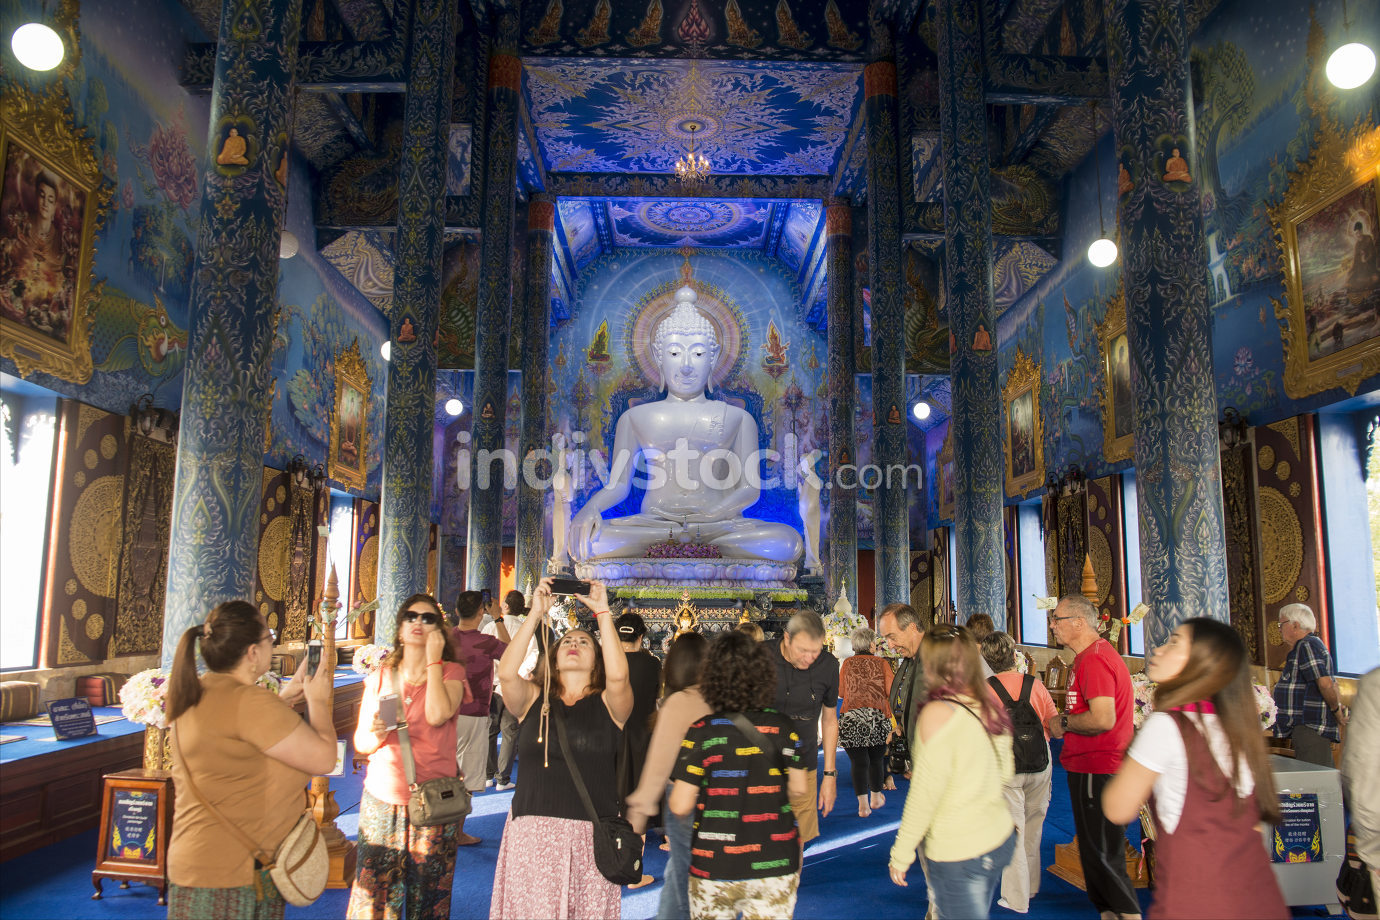 chinese tourists at the Buddha statue in the Blue Temple or Wat Rong Suea Ten in the city of Chiang Rai in North Thailand.  November, 2019